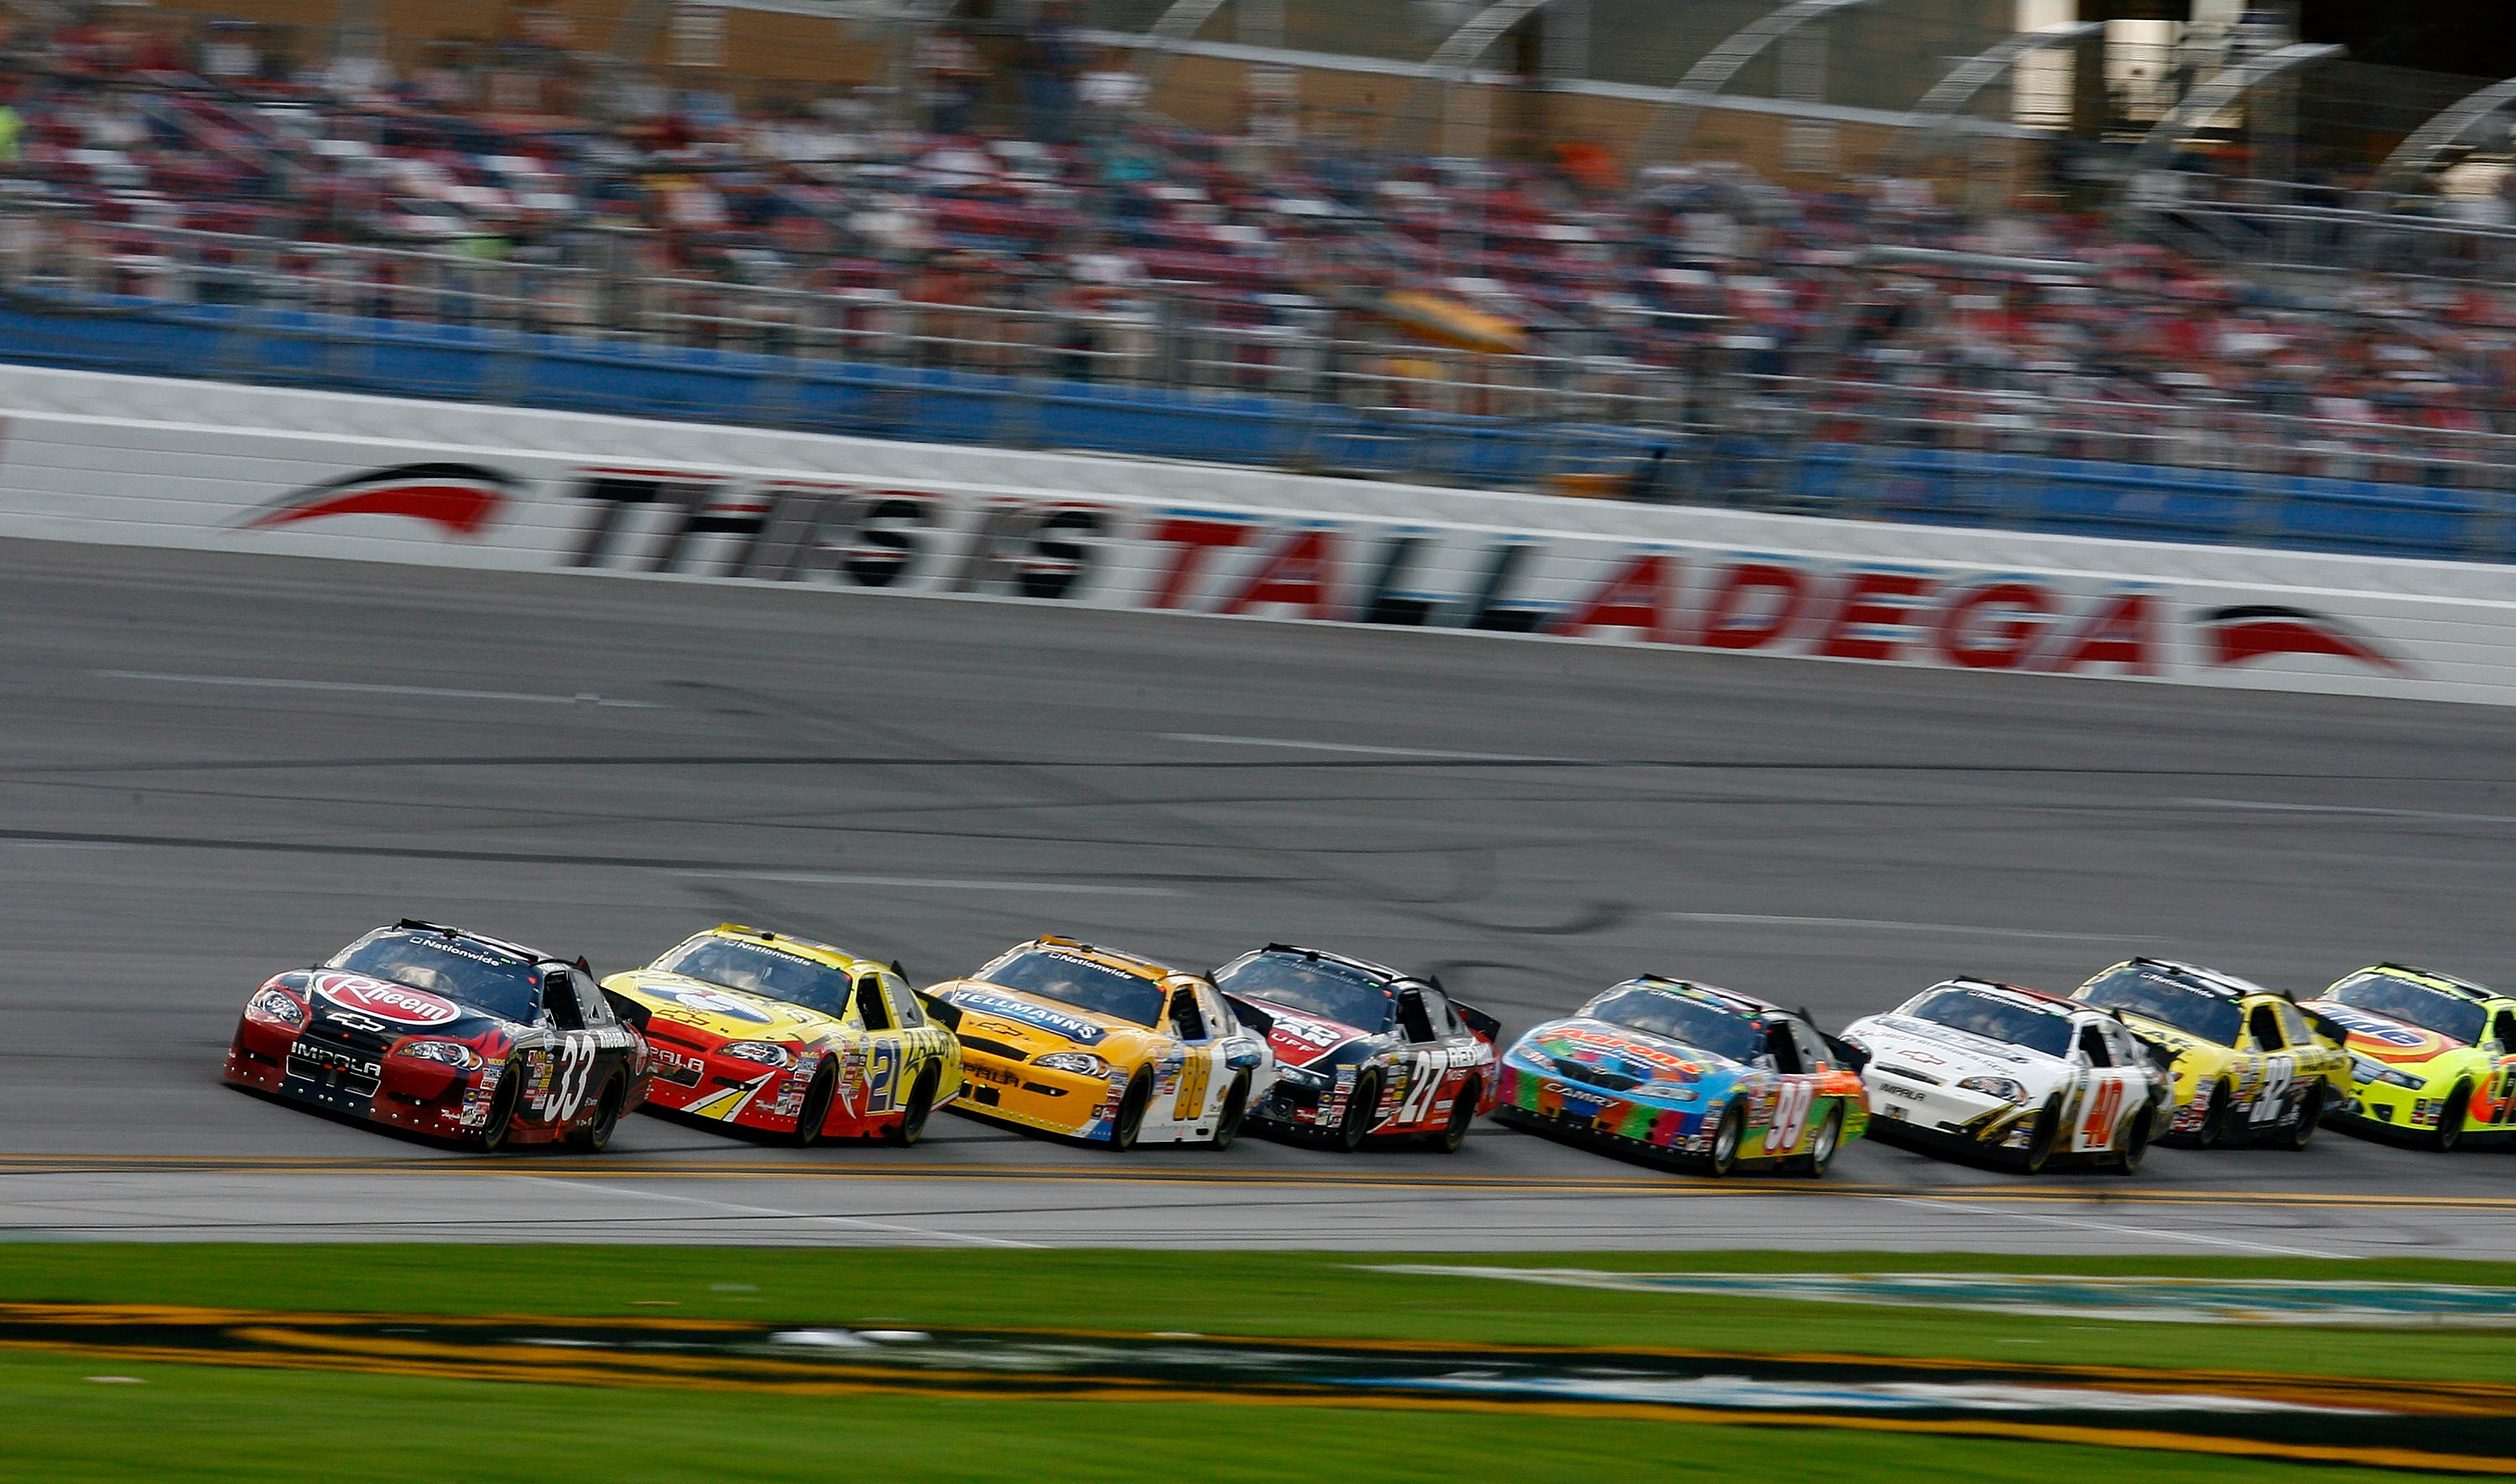 TALLADEGA, AL - APRIL 25:  Kevin Harvick, driver of the #33 Rheem Chevrolet, leads the field during the NASCAR Nationwide Series Aaron's 312 at Talladega Superspeedway on April 25, 2010 in Talladega, Alabama.  (Photo by Jason Smith/Getty Images)